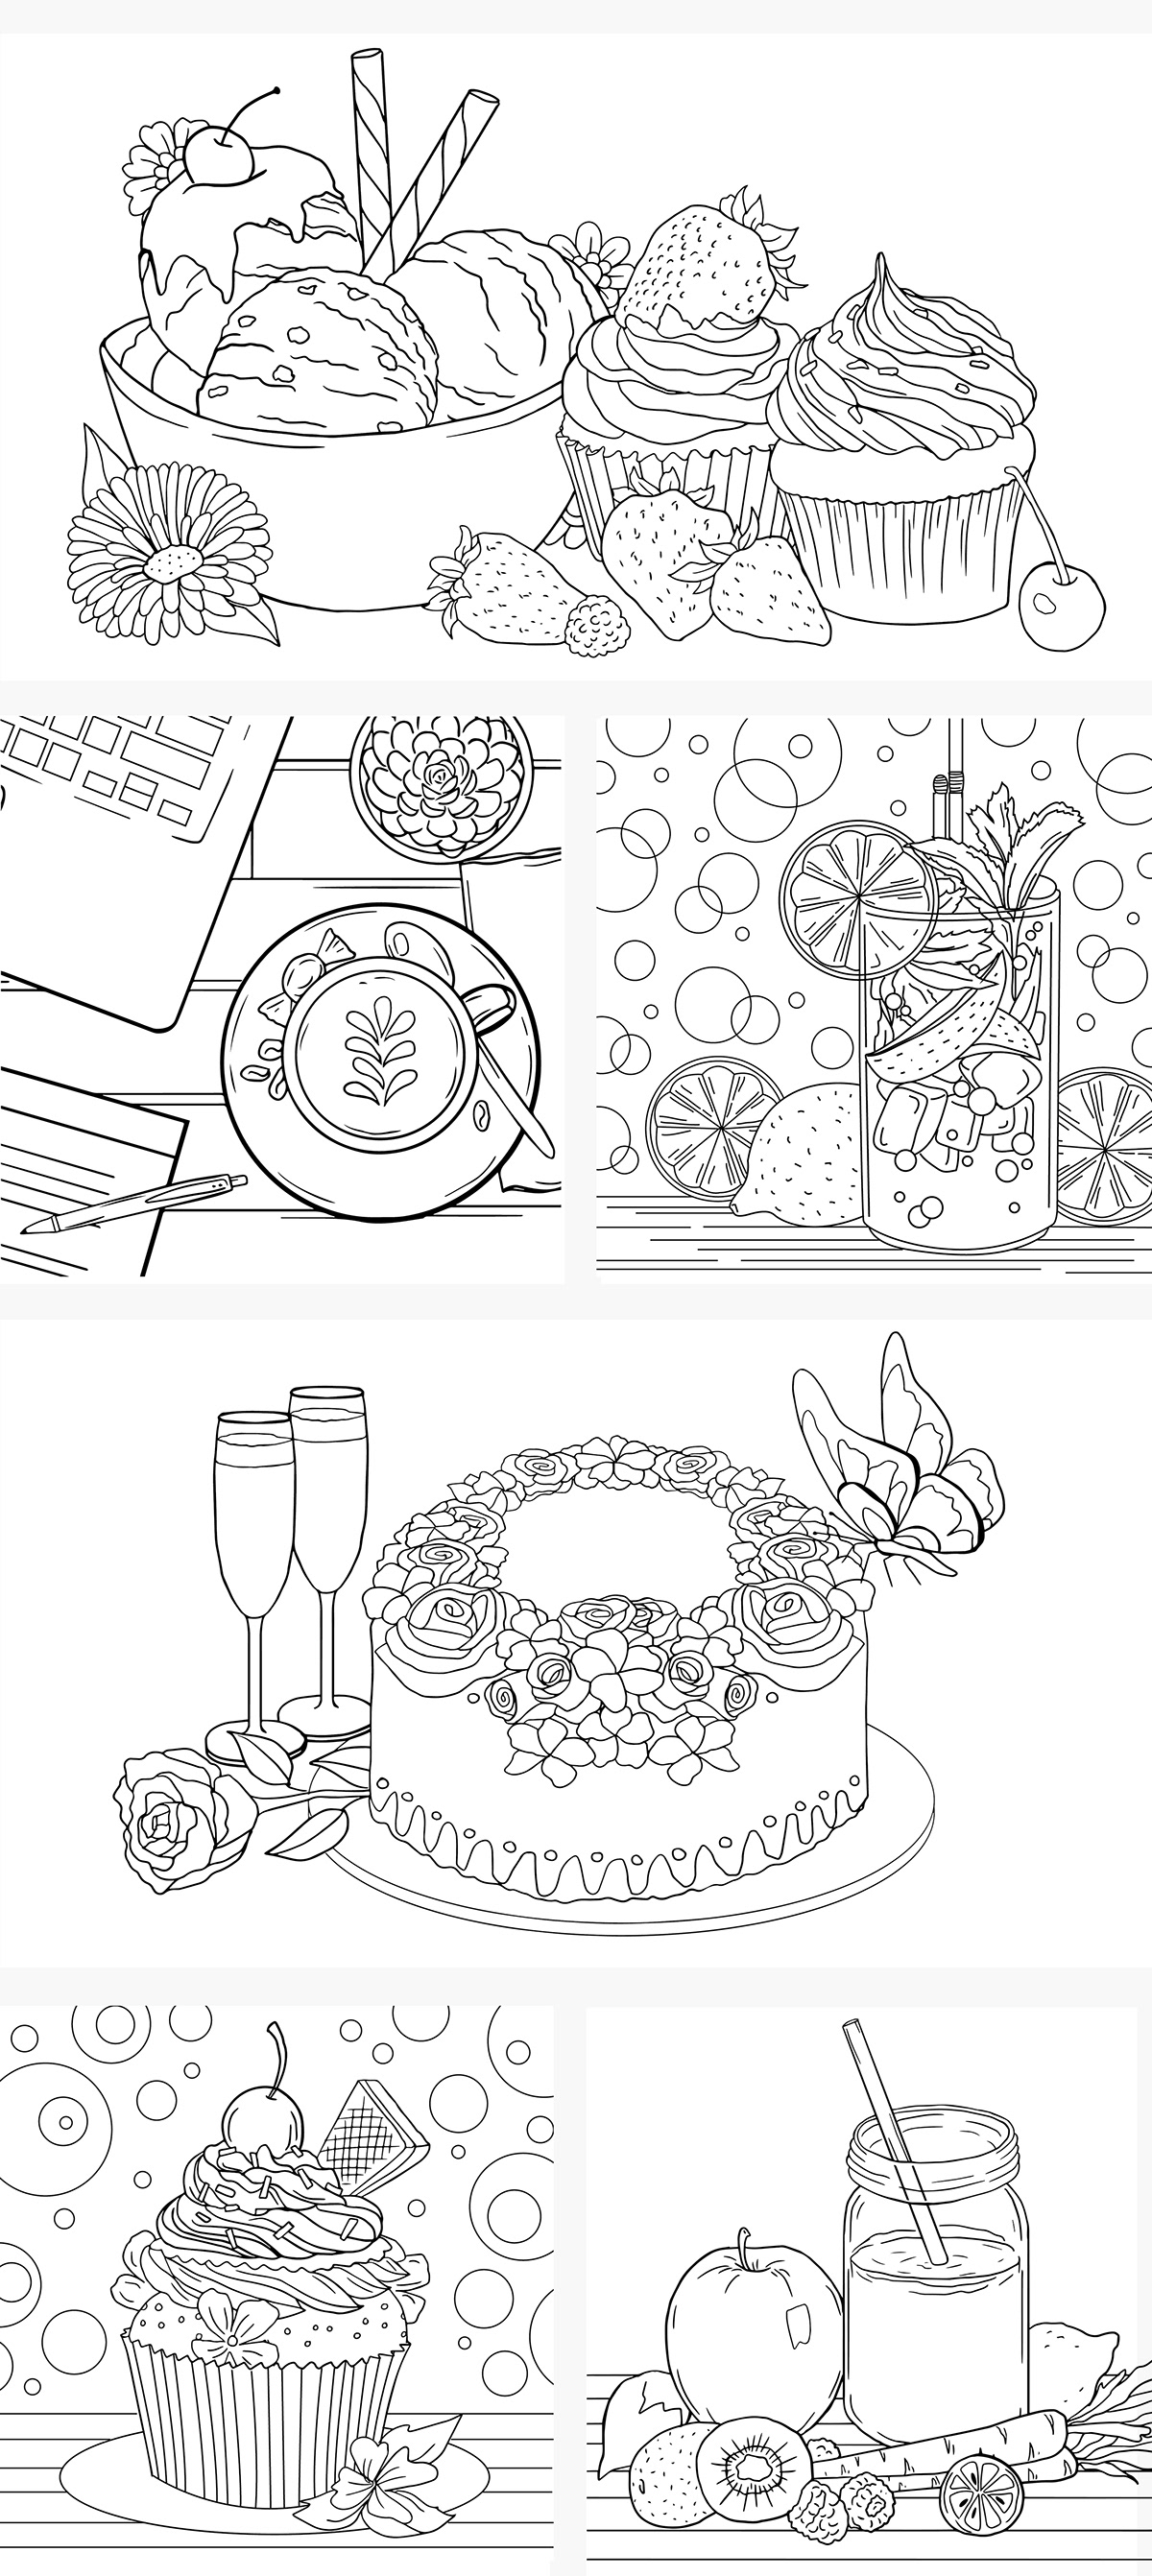 - Coloring Pages - Food On Student Show